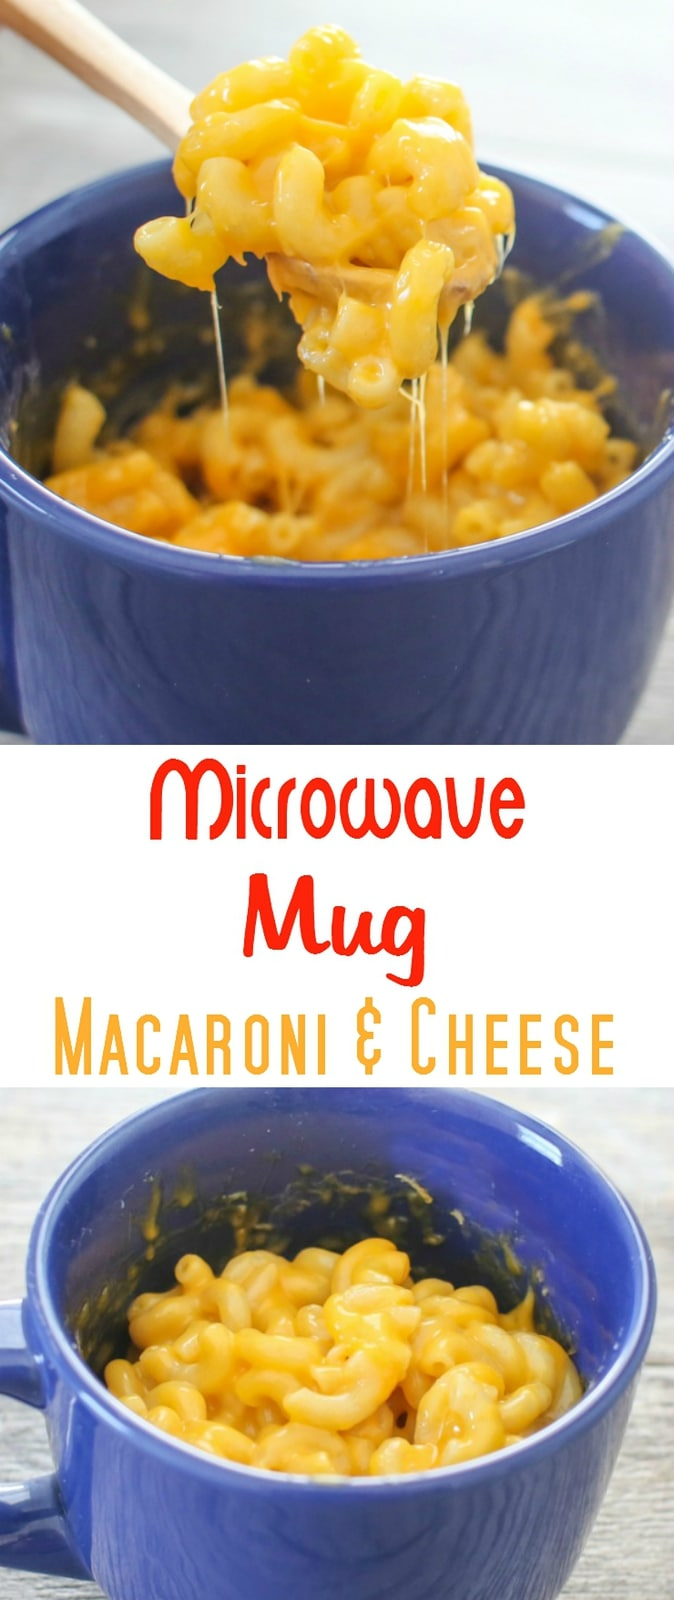 Microwave Macaroni and Cheese in a Mug. This macaroni and cheese is ready in about 5 minutes!